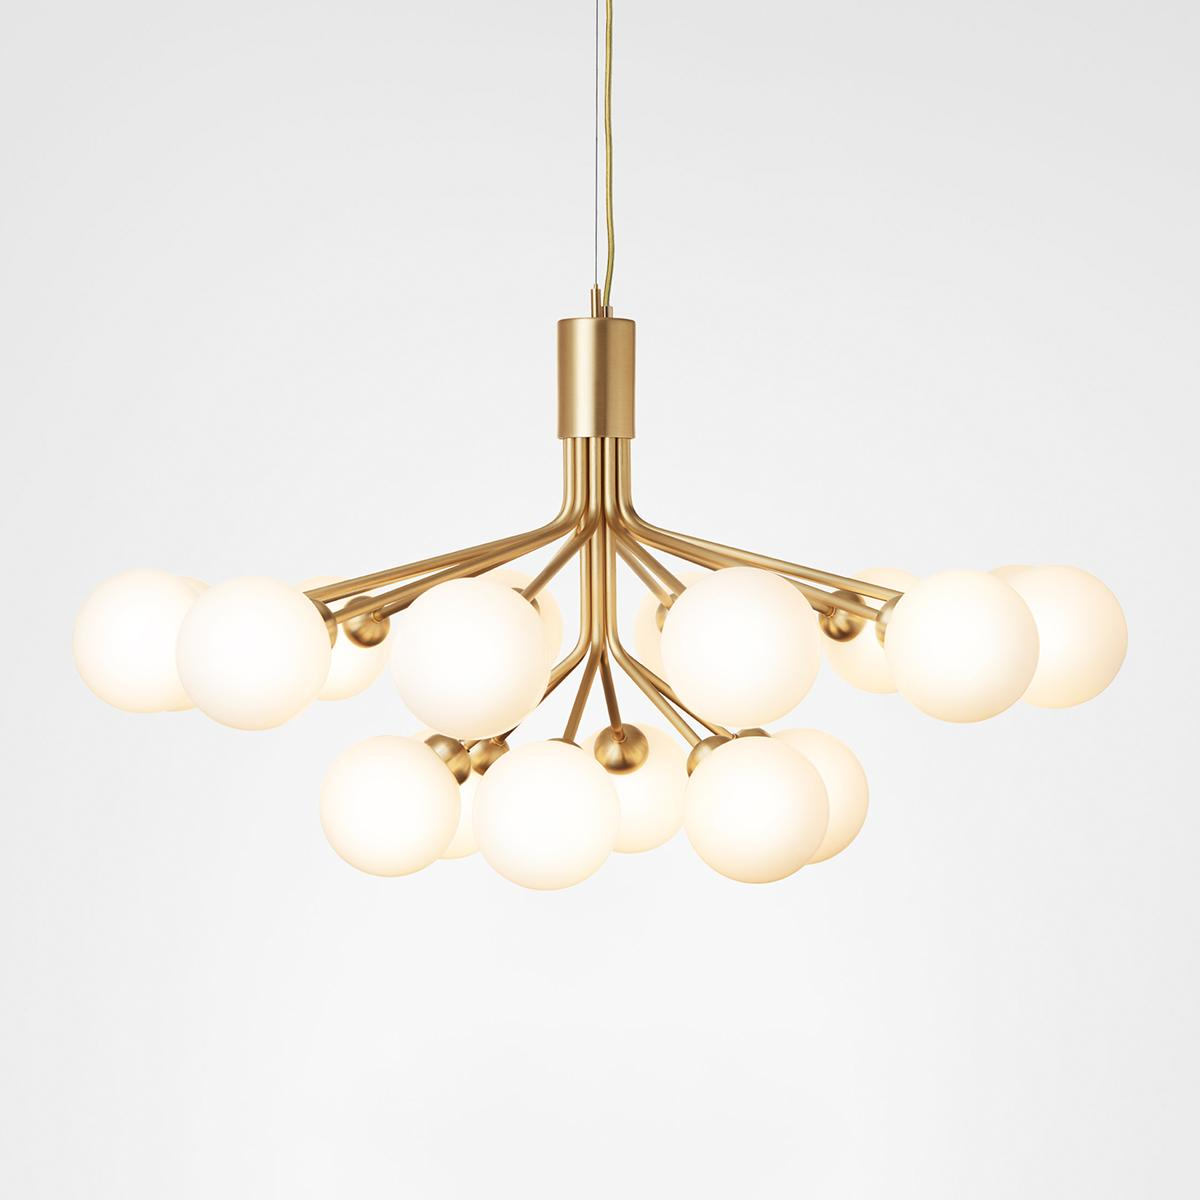 nuura-apiales-18-chandelier-brushed-brass-opal-1200